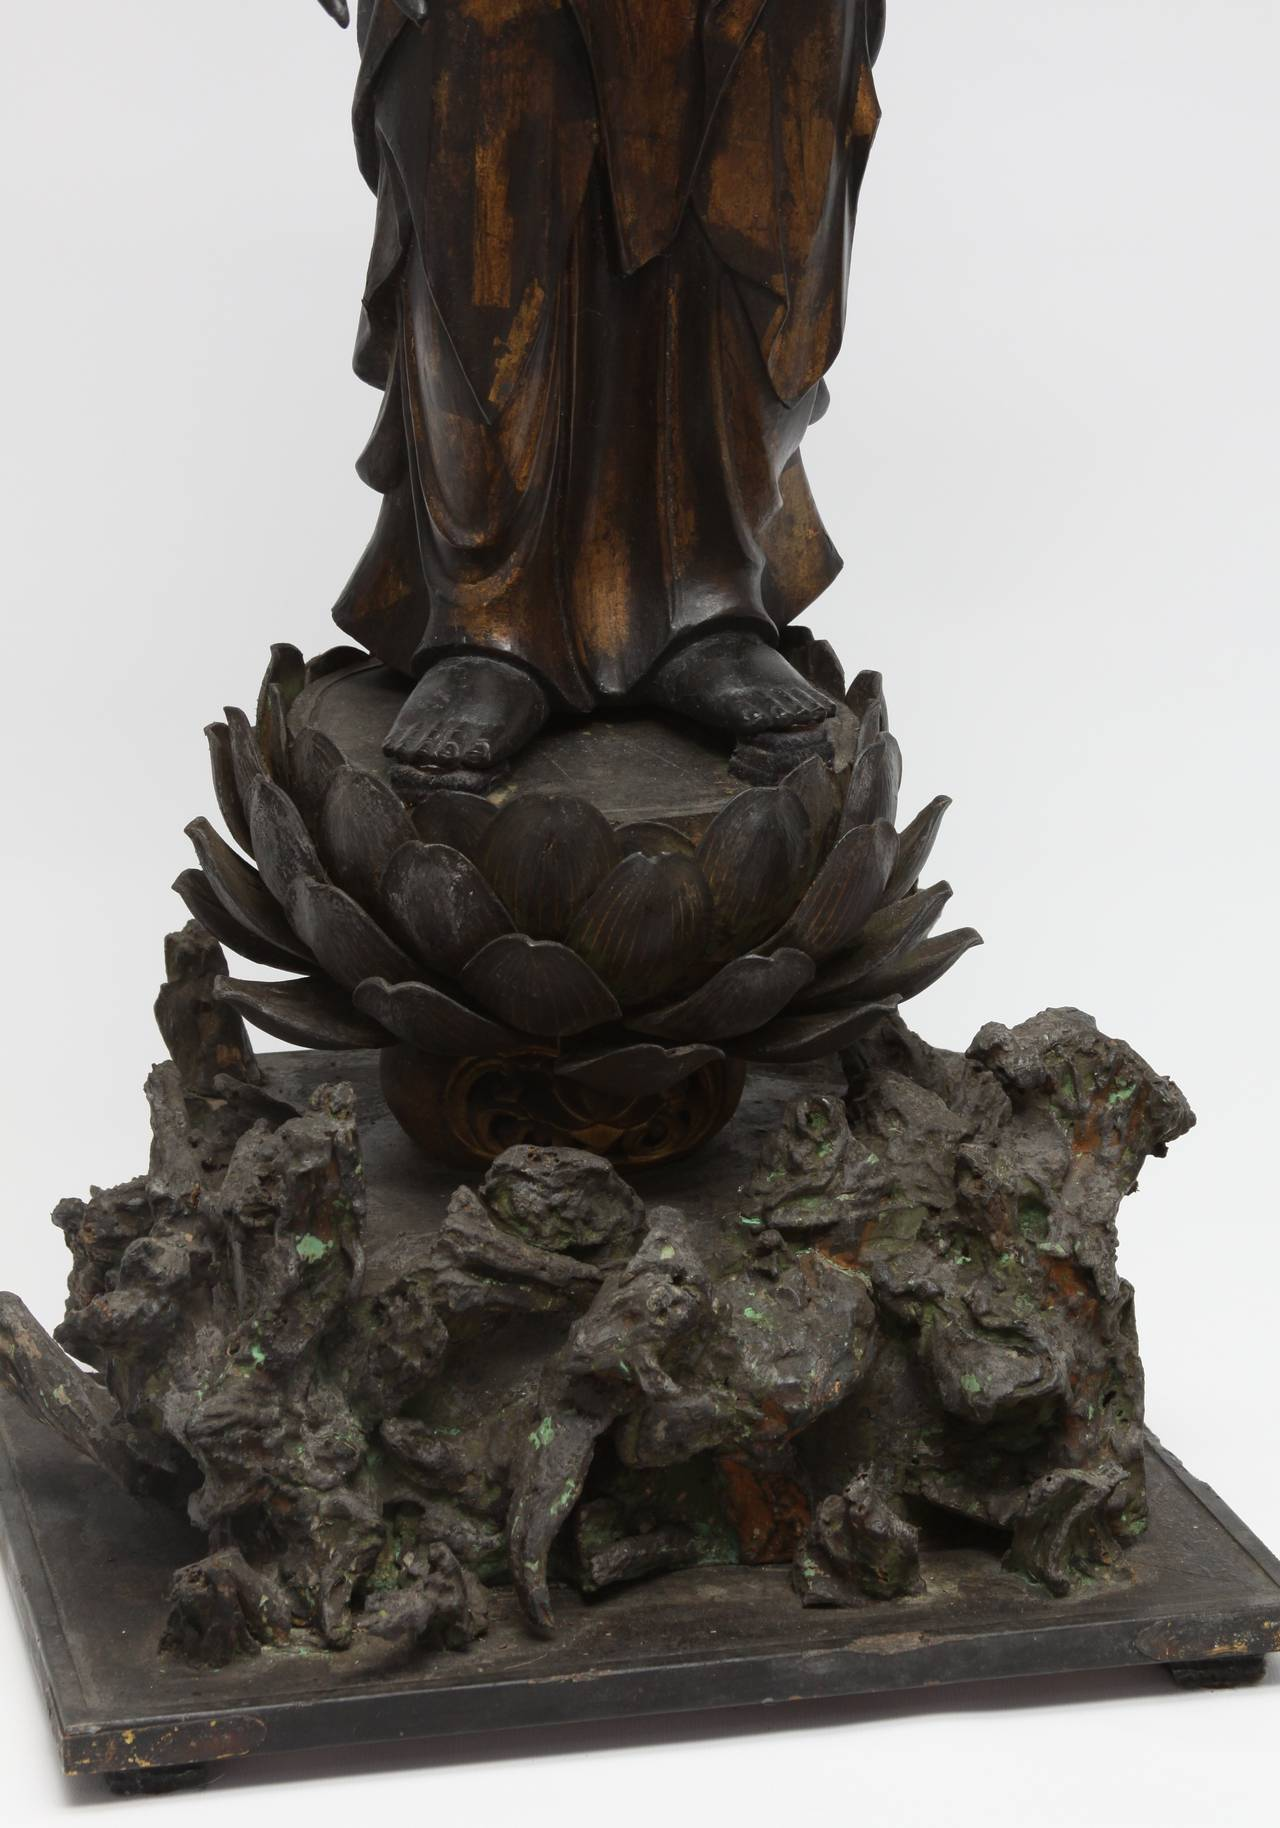 Japanese gilt and lacquer carved wood kannon bodhisattva